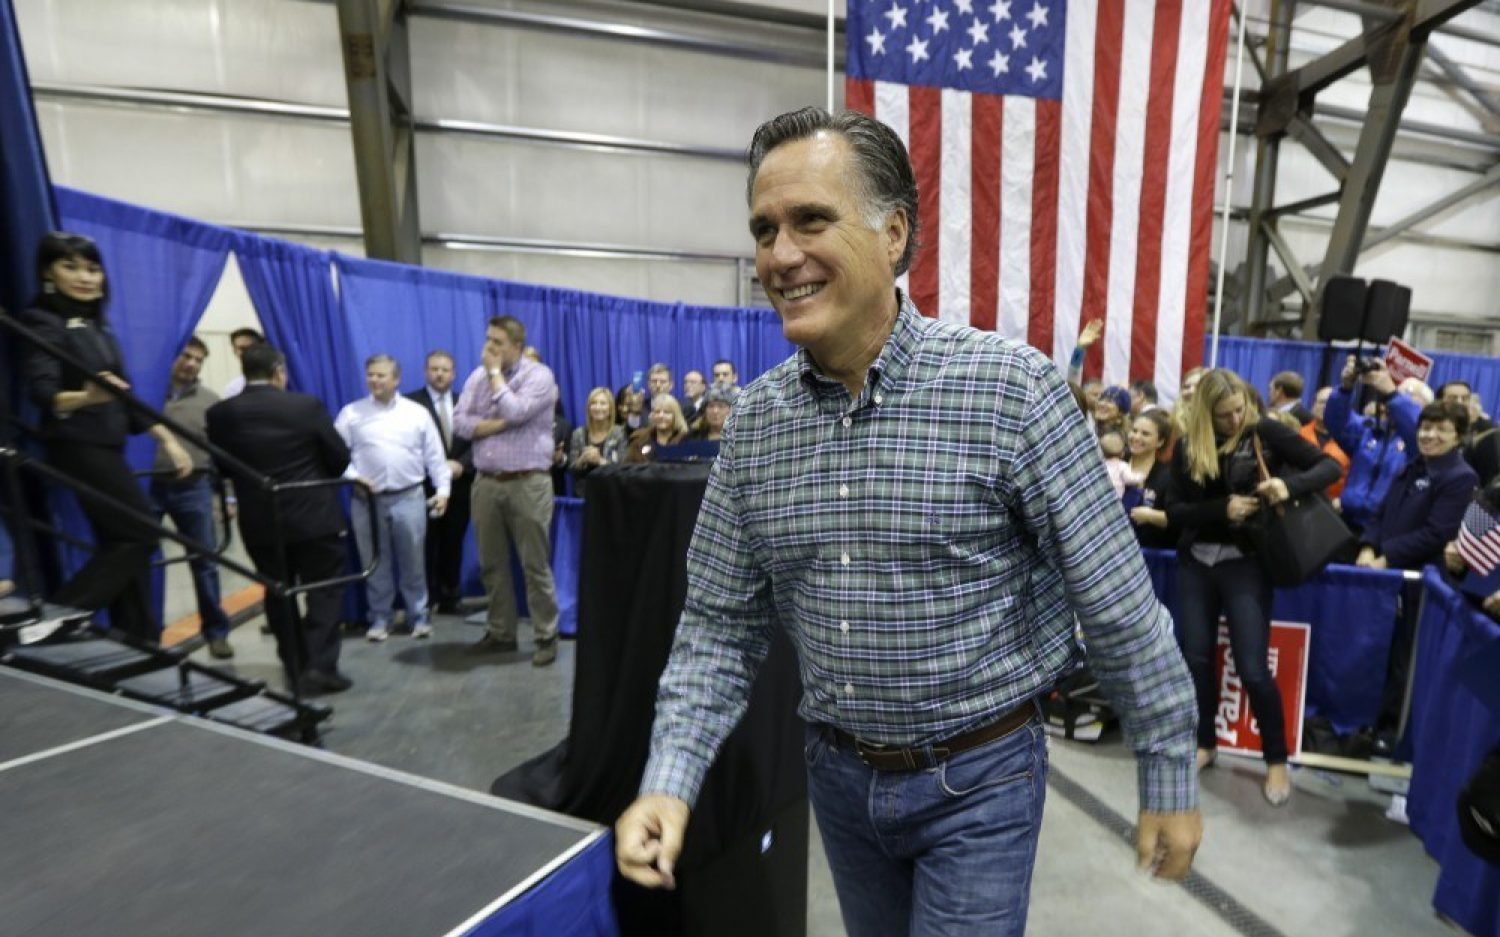 Romney political machine warms up for possible 2016 run